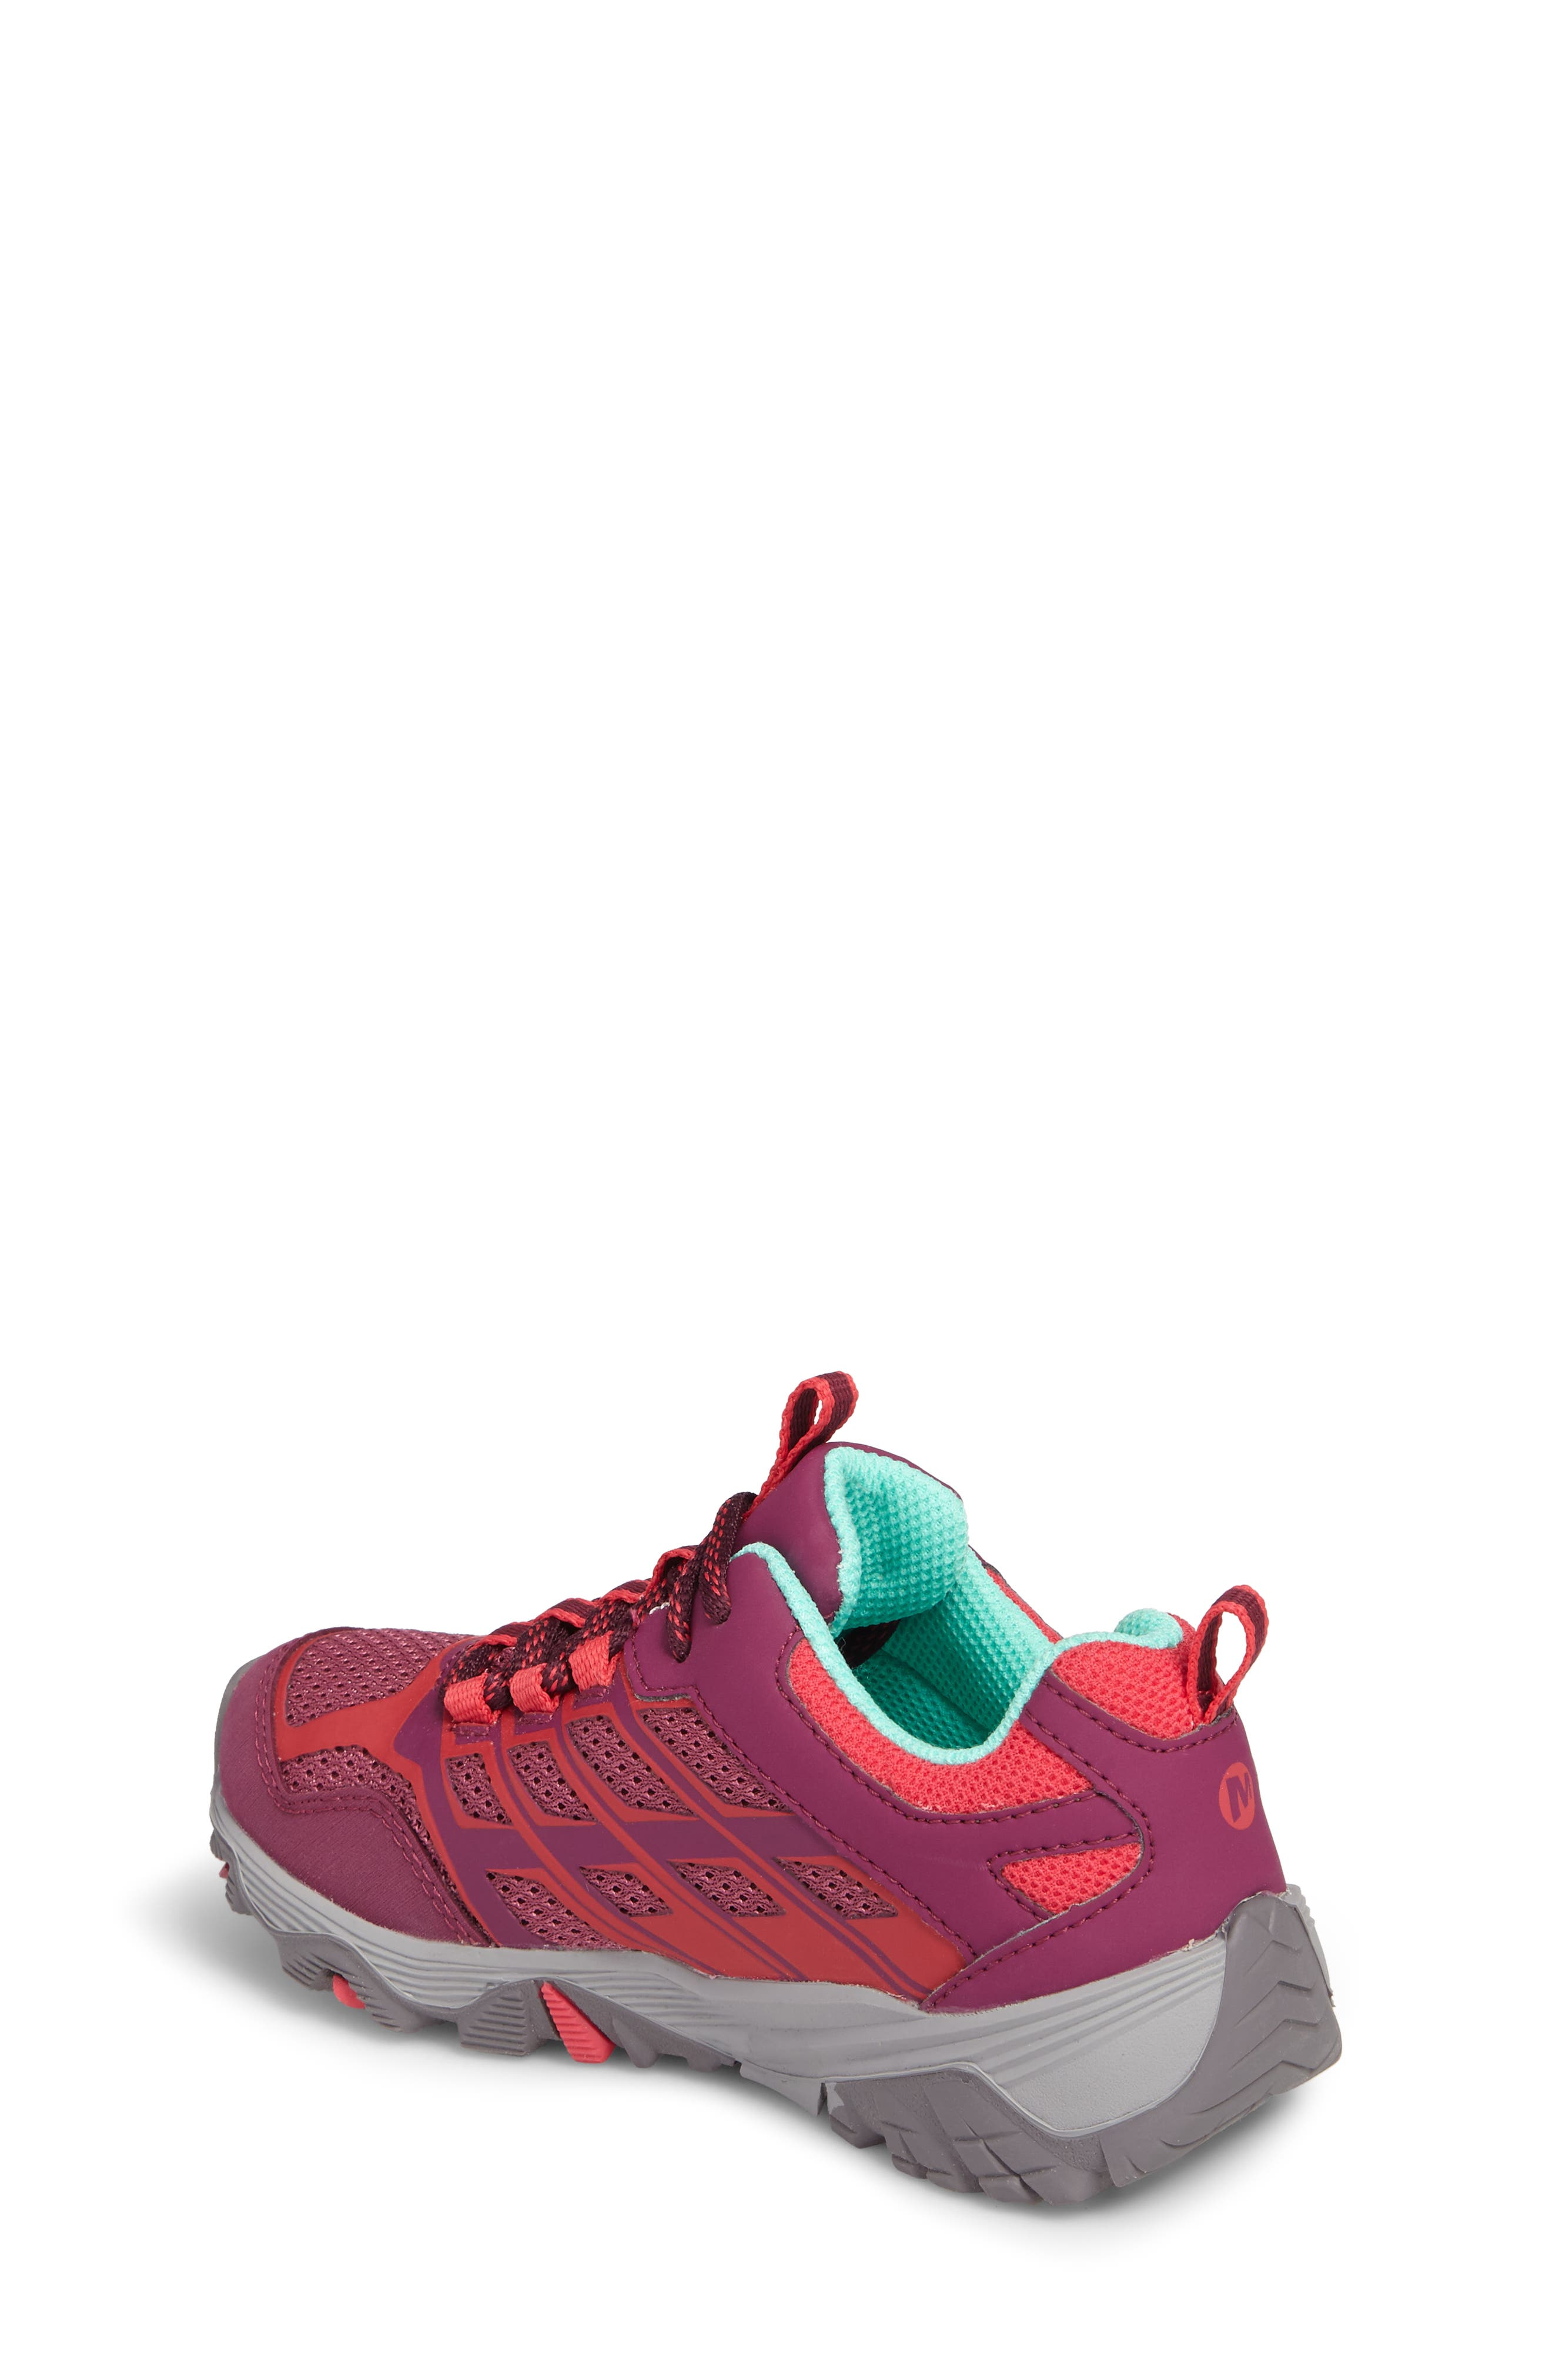 Alternate Image 2  - Merrell Moab FST Polar Low Waterproof Sneaker (Toddler, Little Kid & Big Kid)